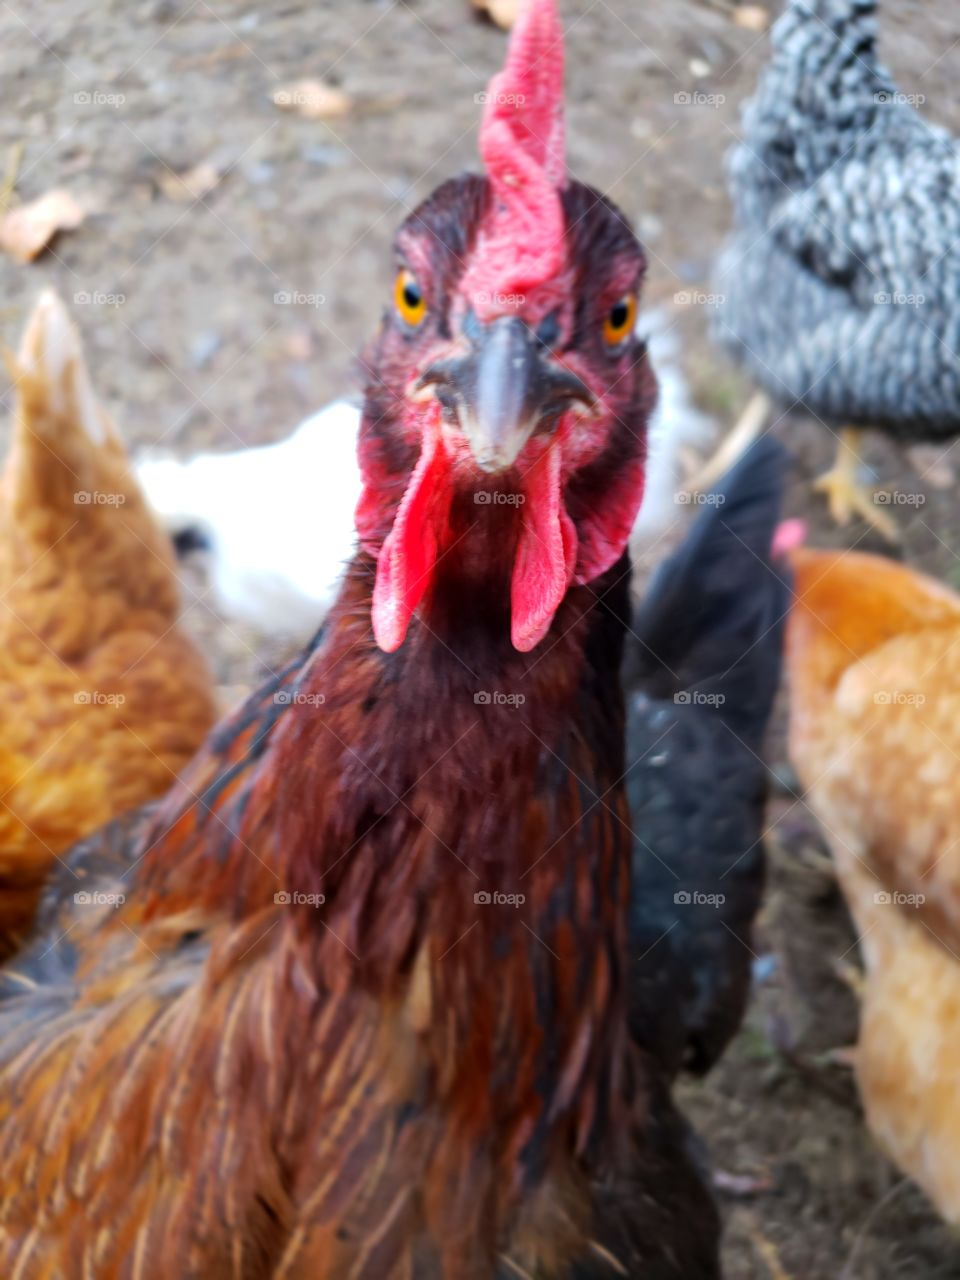 chicken starring at the camera